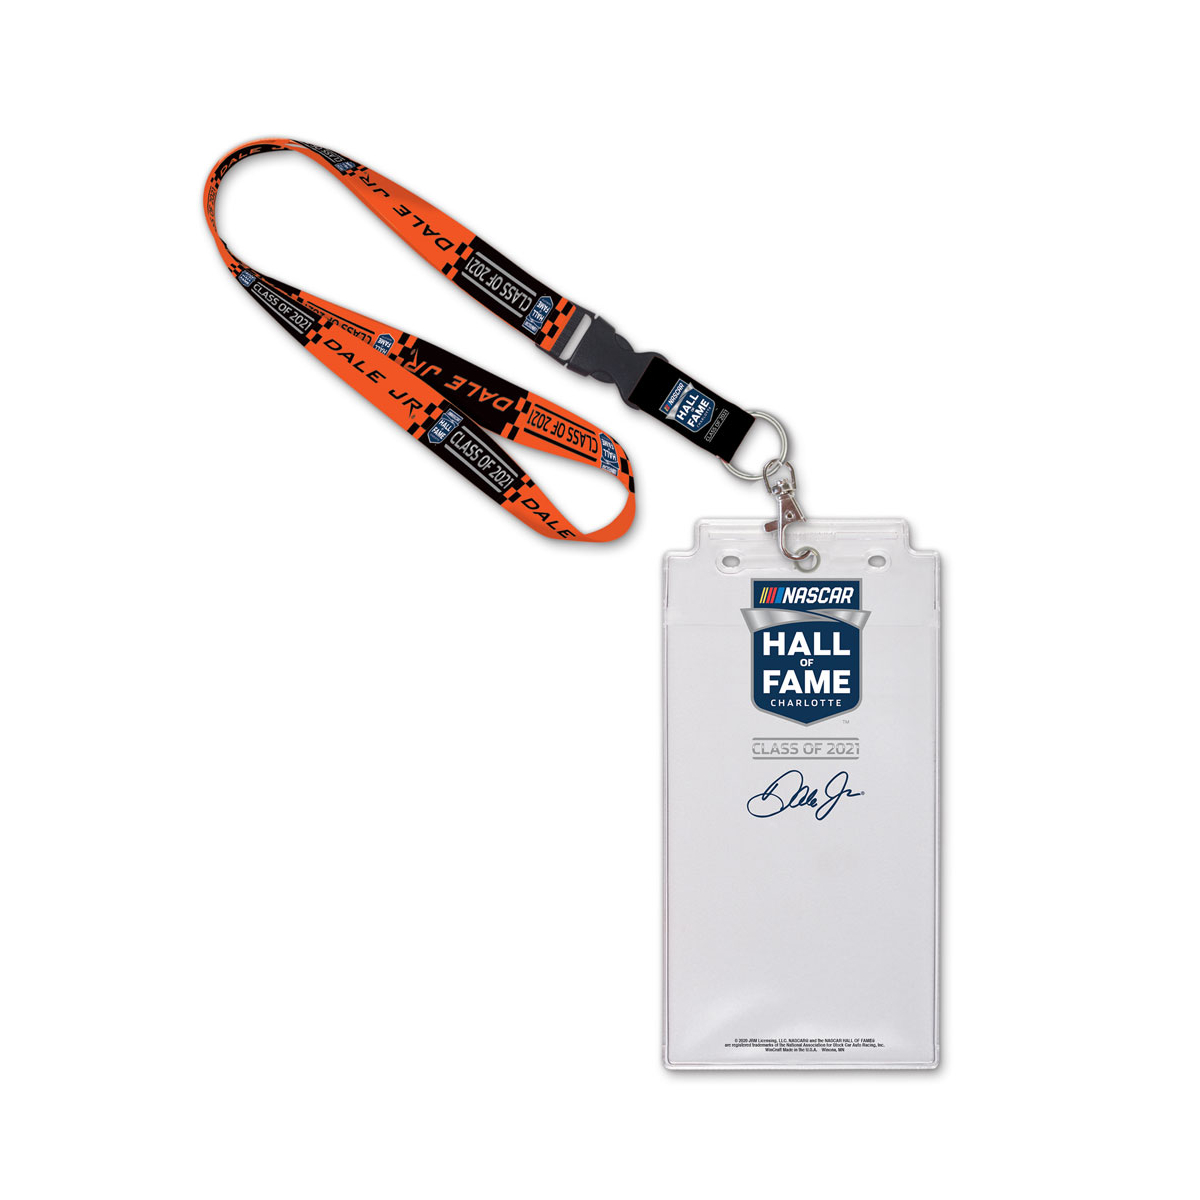 Dale Jr 2021 NHOF Inductee Lanyard with Credential Holder